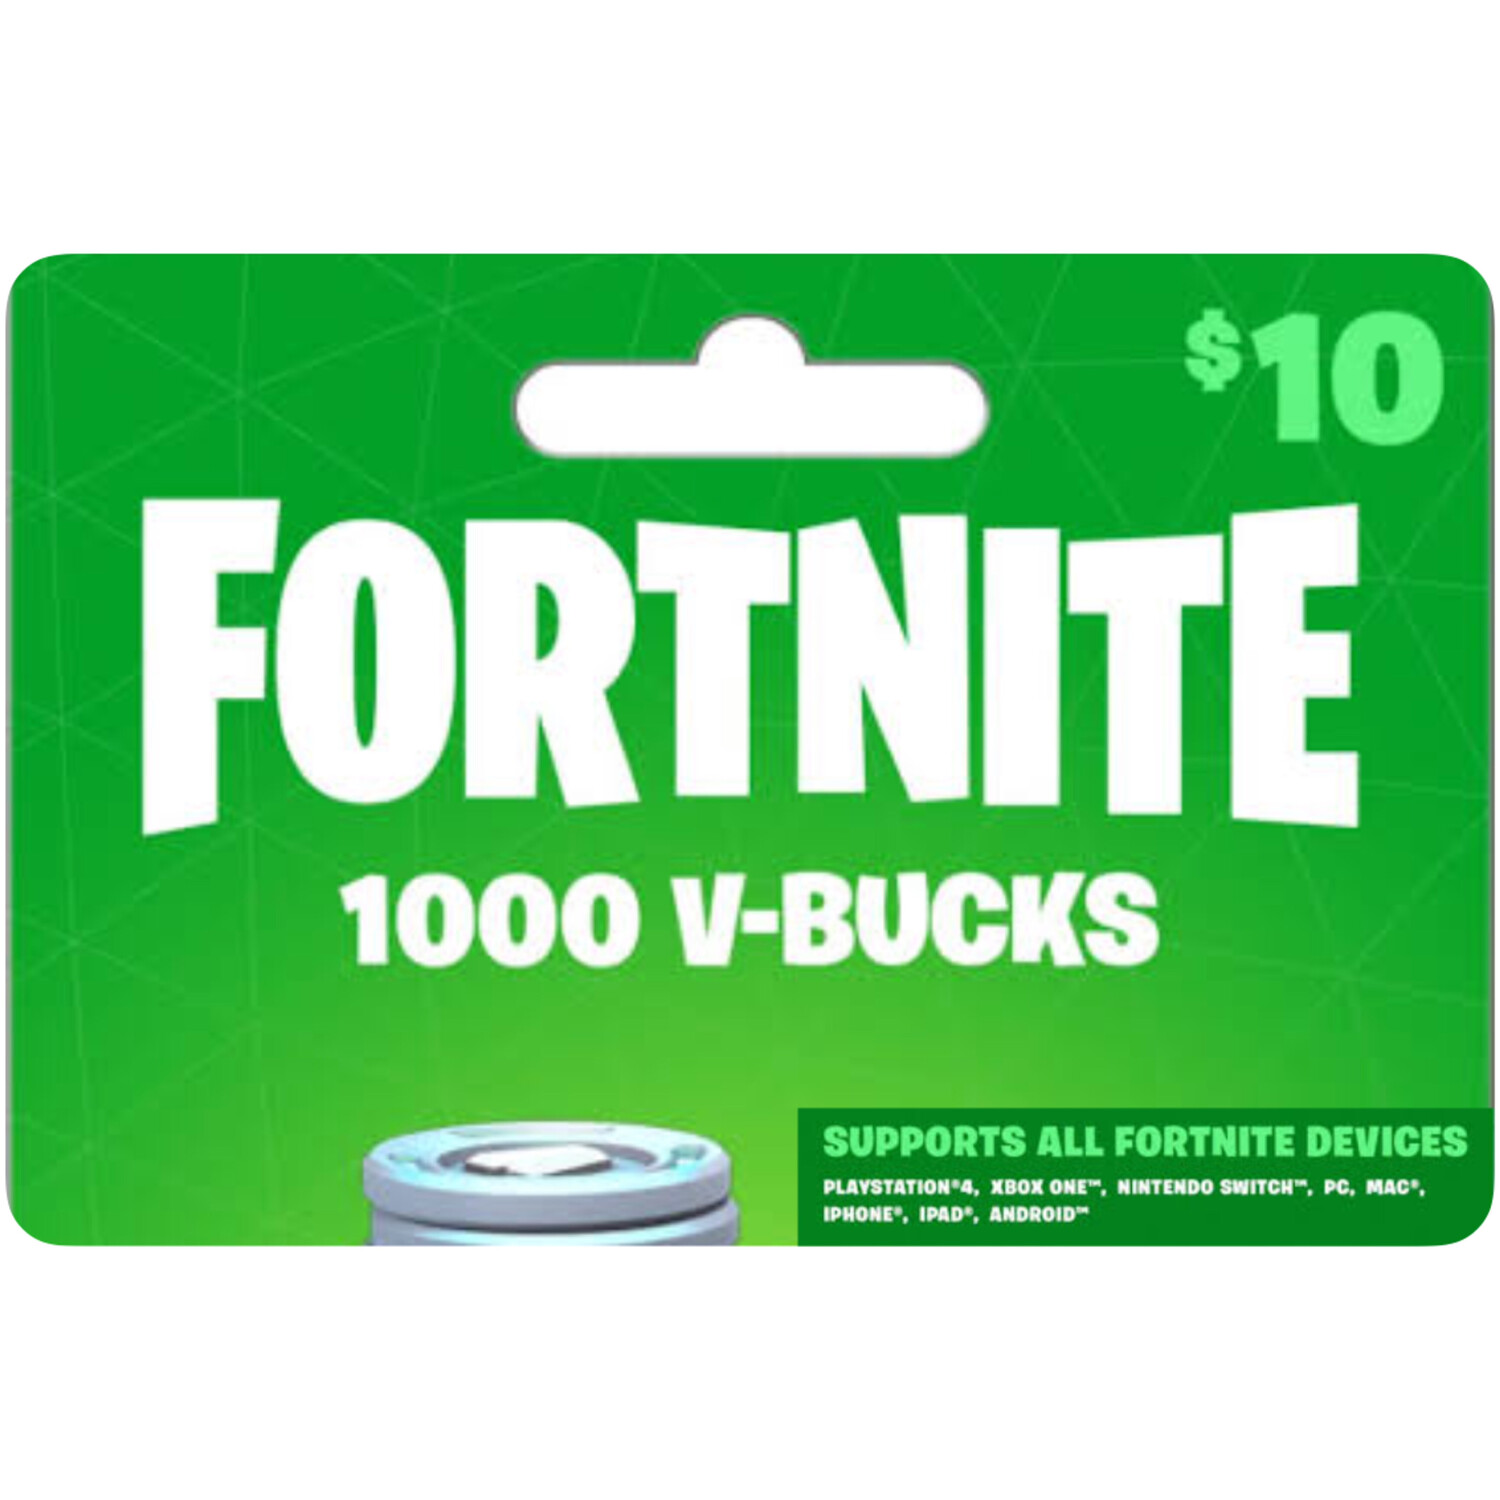 Fortnite 1000 VBucks $10 for All Devices